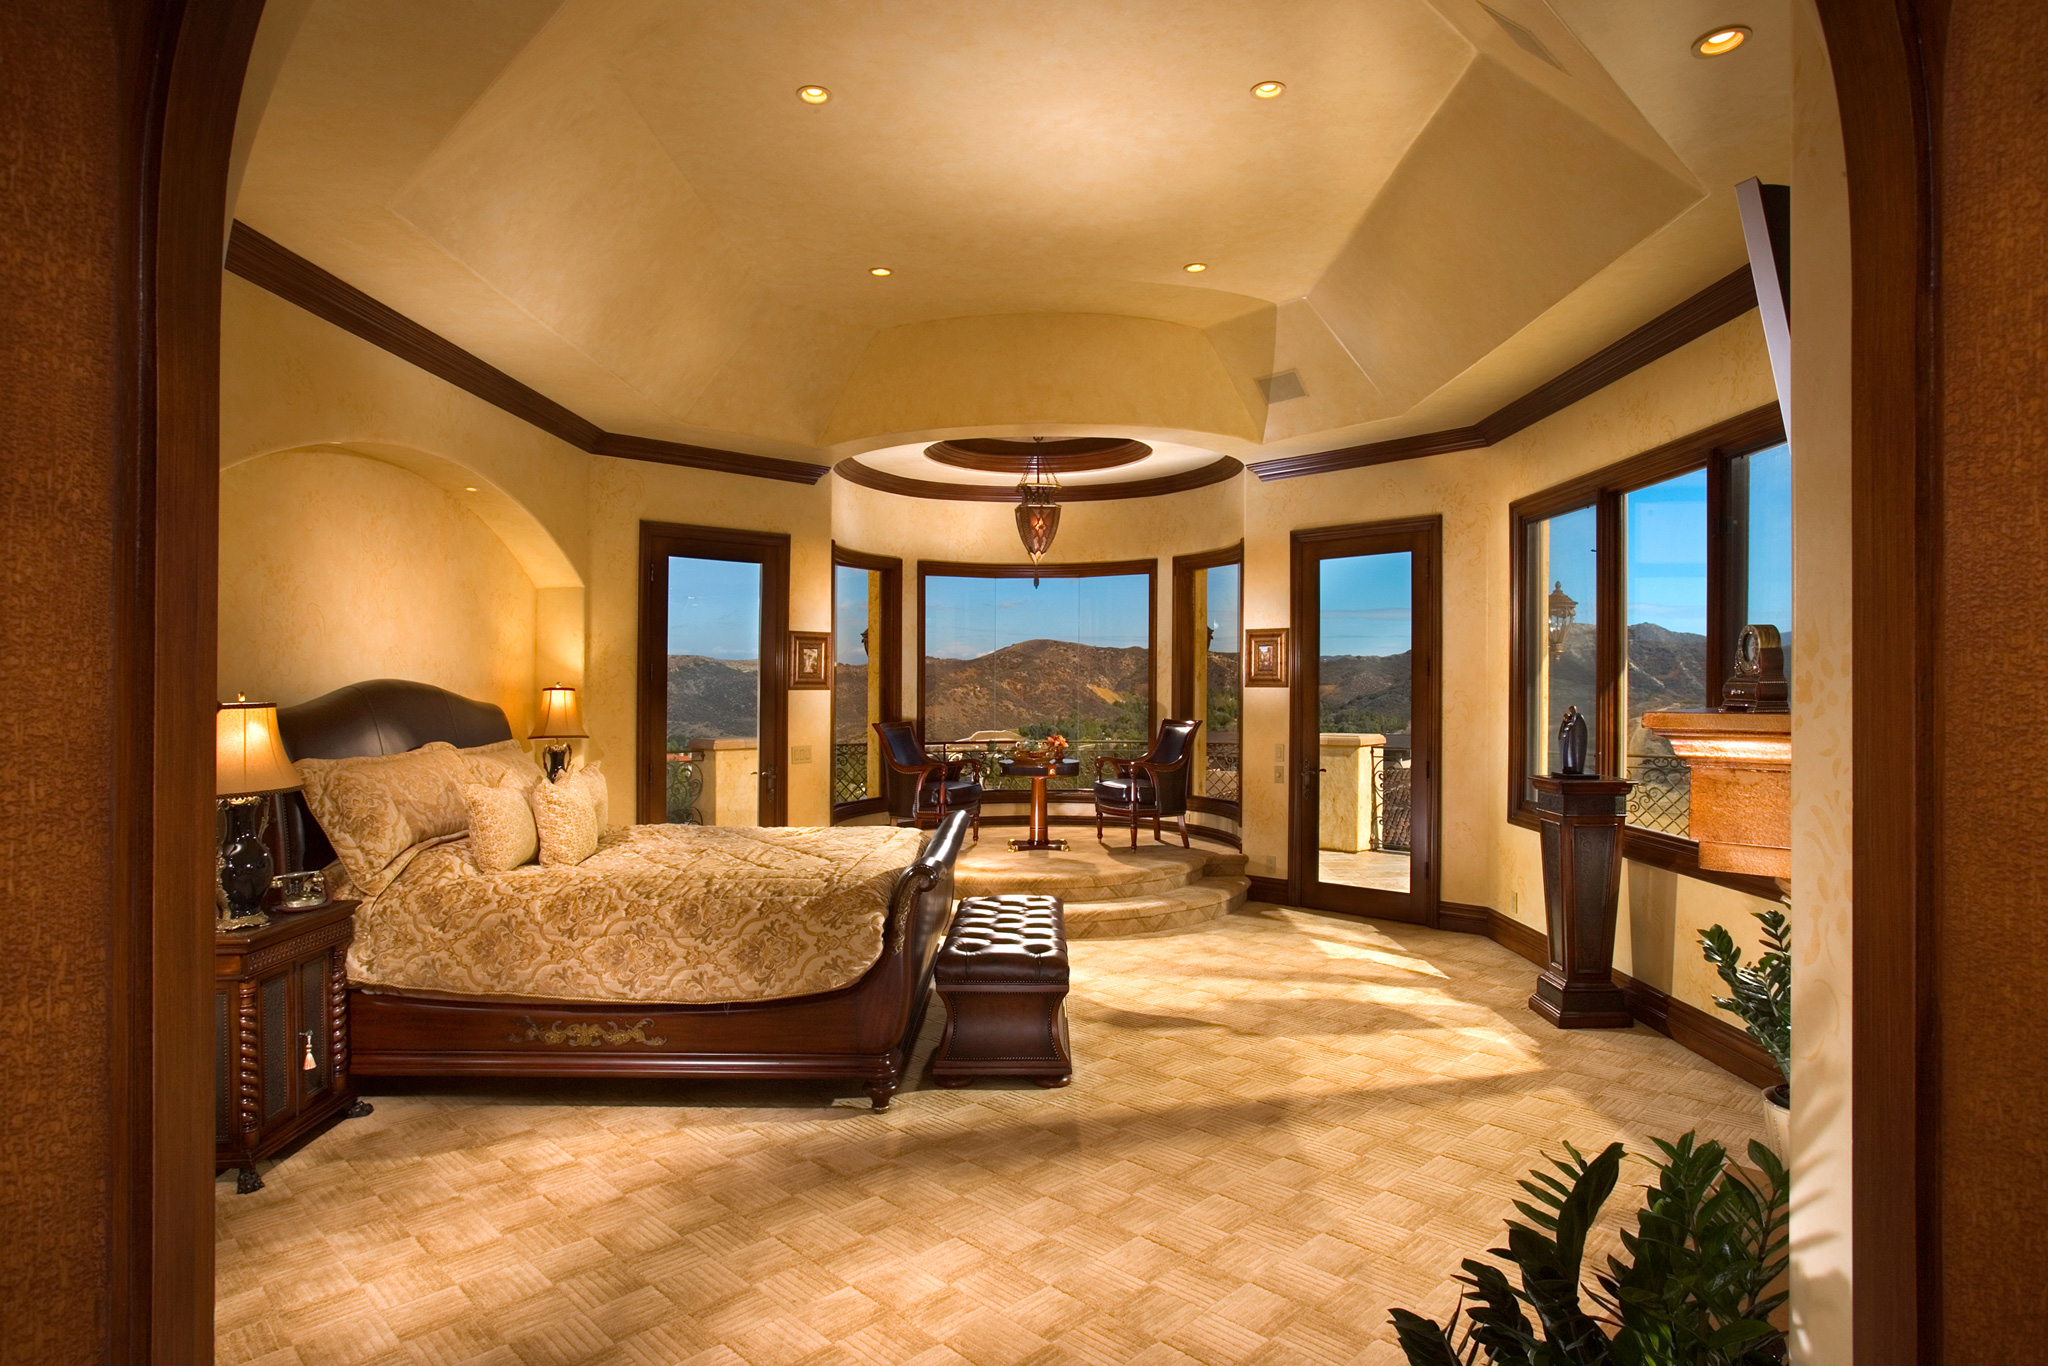 Master Bedroom - The Interior Designs